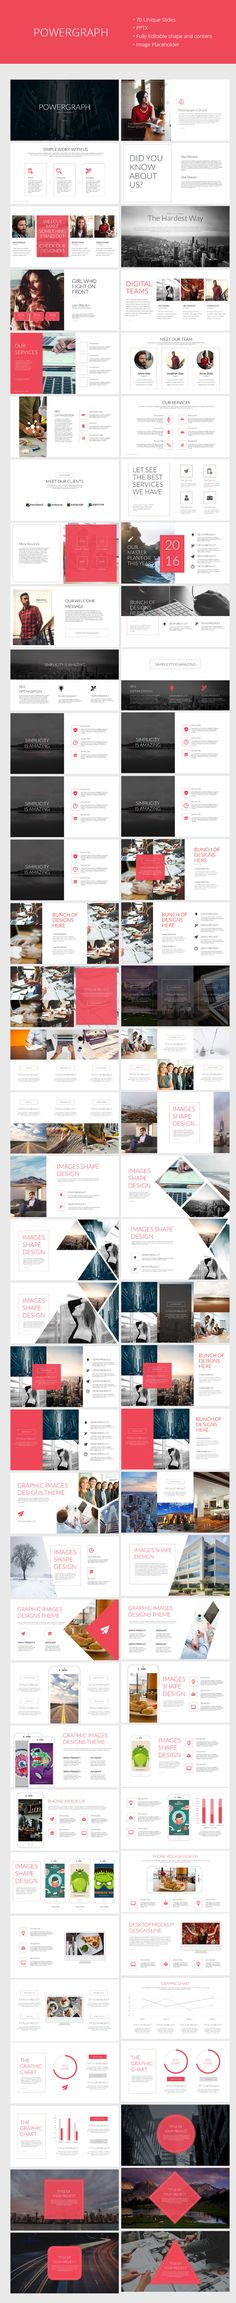 Powergraph Clean Powerpoint Template - PowerPoint Templates Presentation Templates